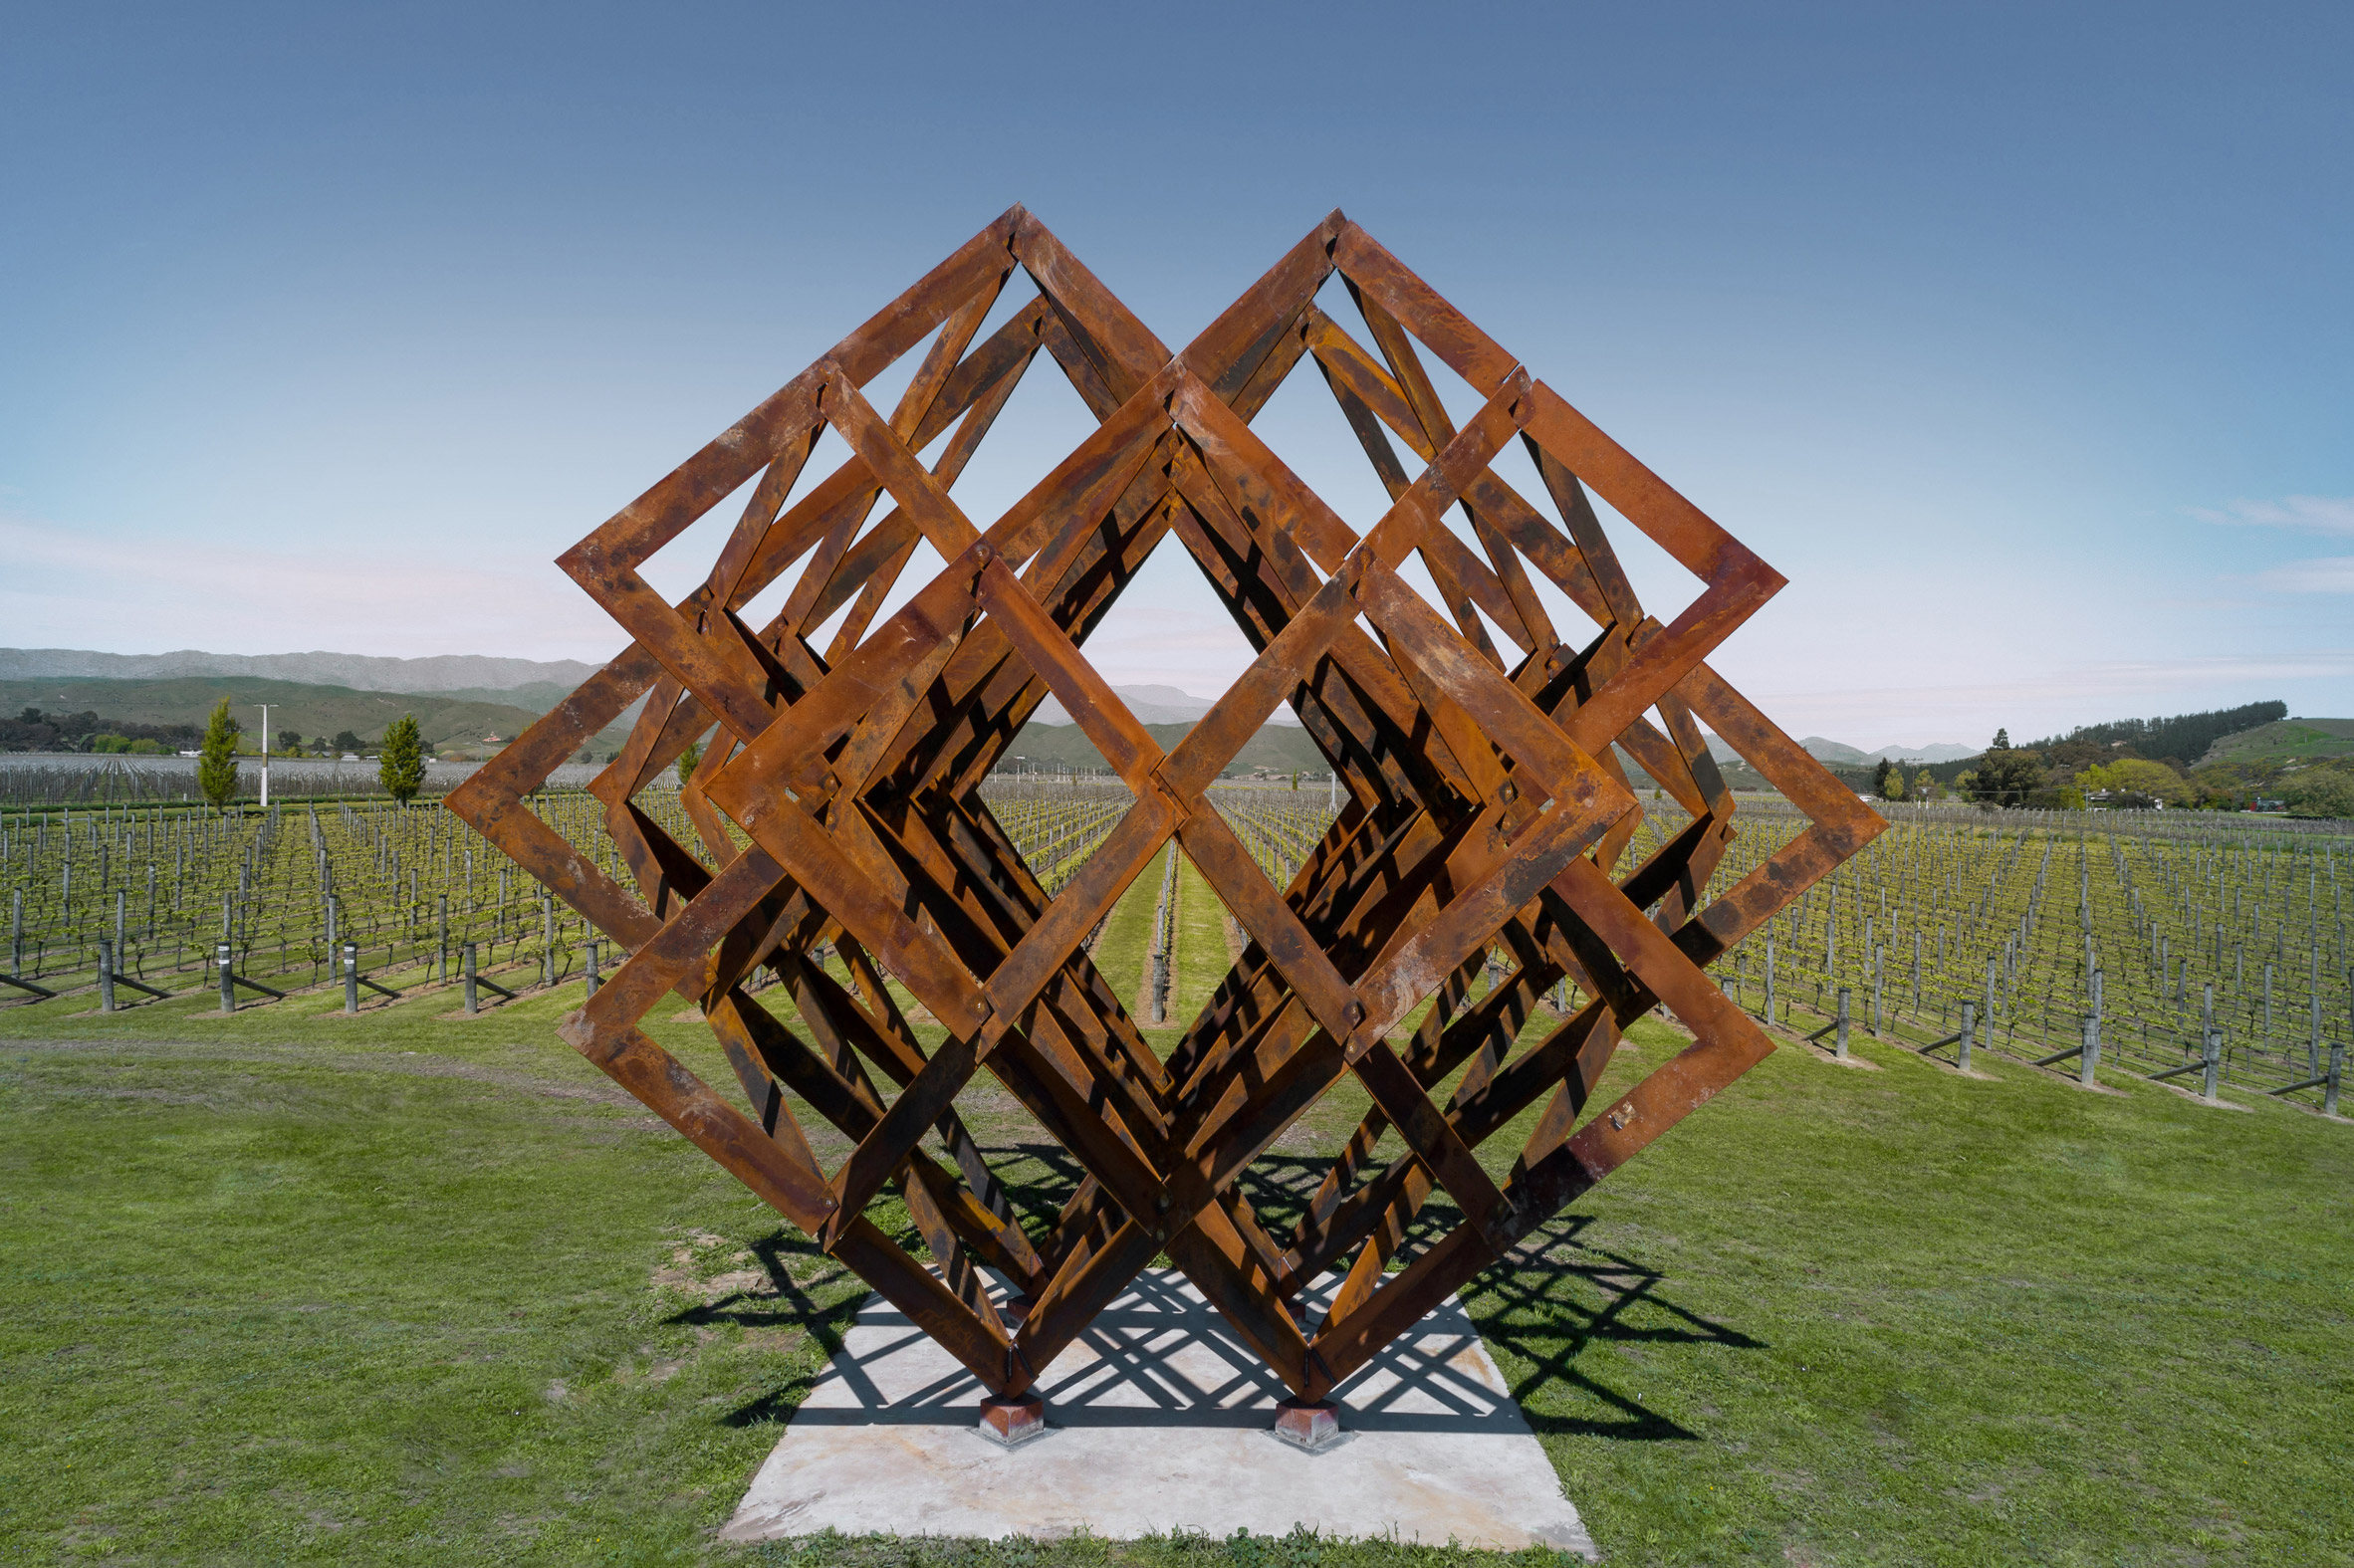 Studio Dror installs huge wine rack-shaped sculpture in New Zealand vineyard